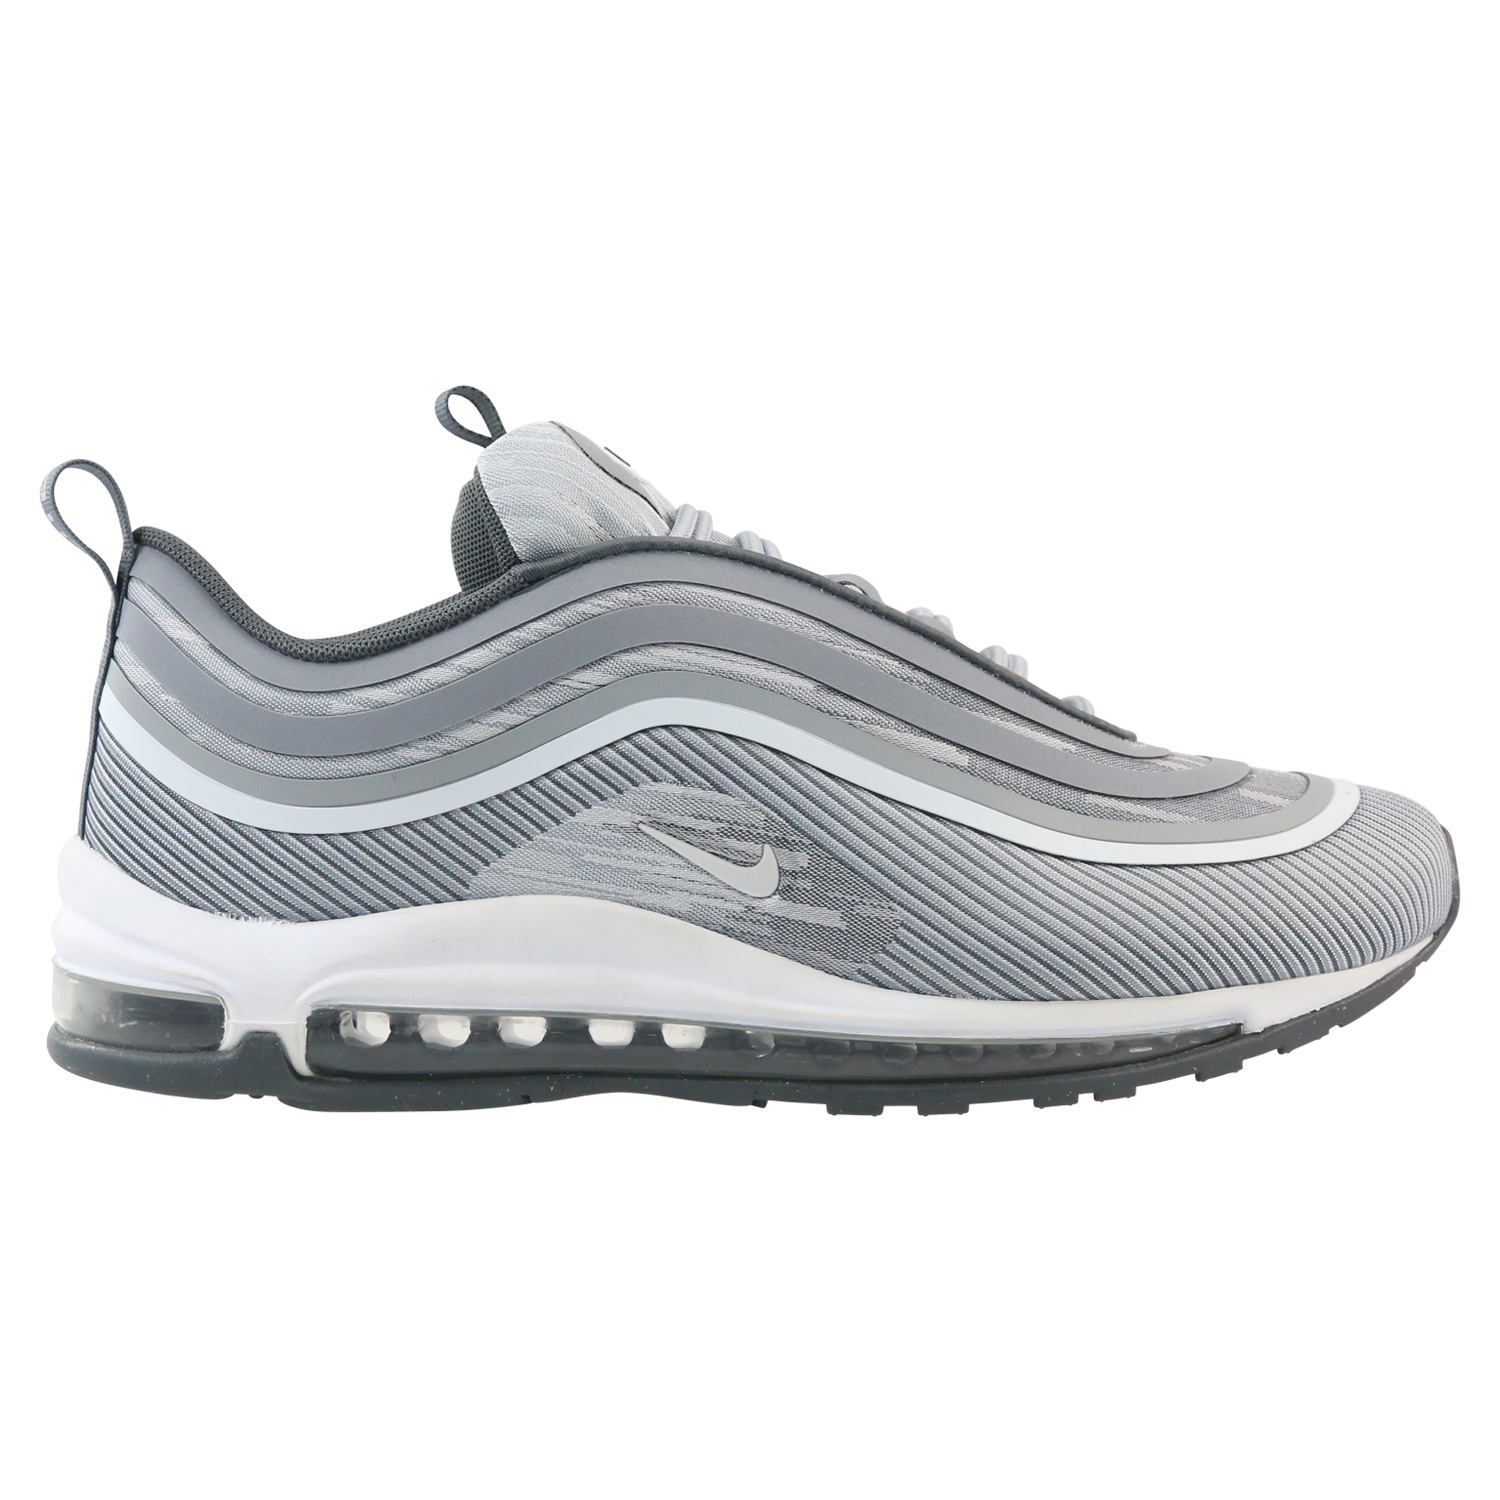 new product e2bf3 ba750 Nike Air Max 97 Ultra 17 Sneaker Herren Sneaker